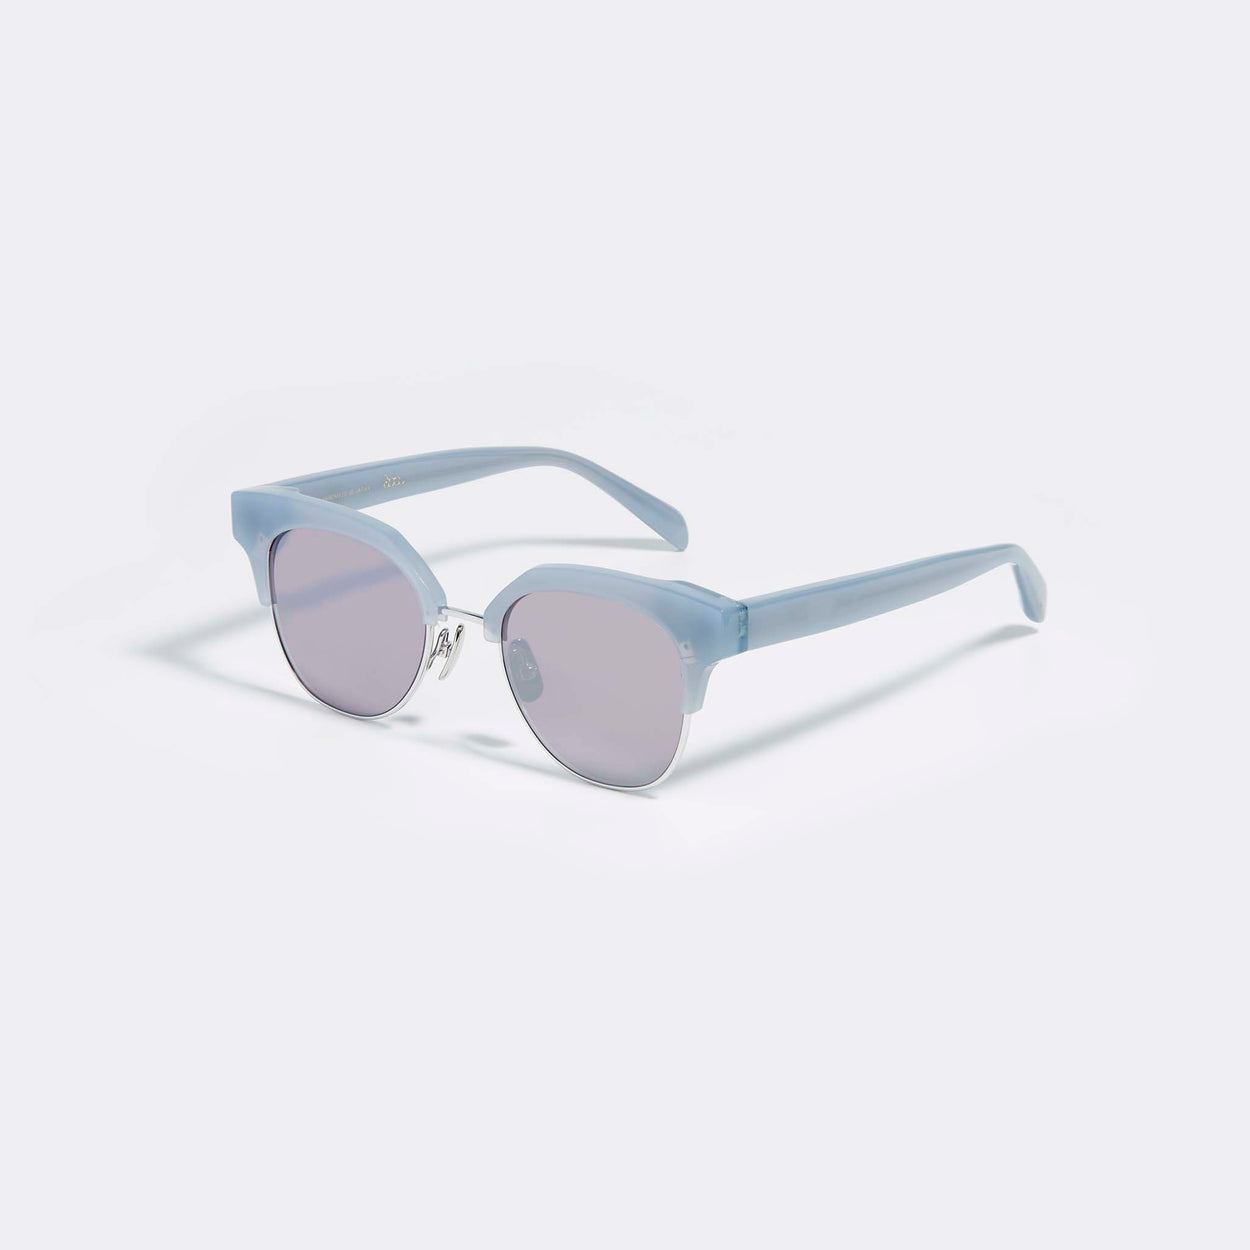 Mia Sunglasses - Dove